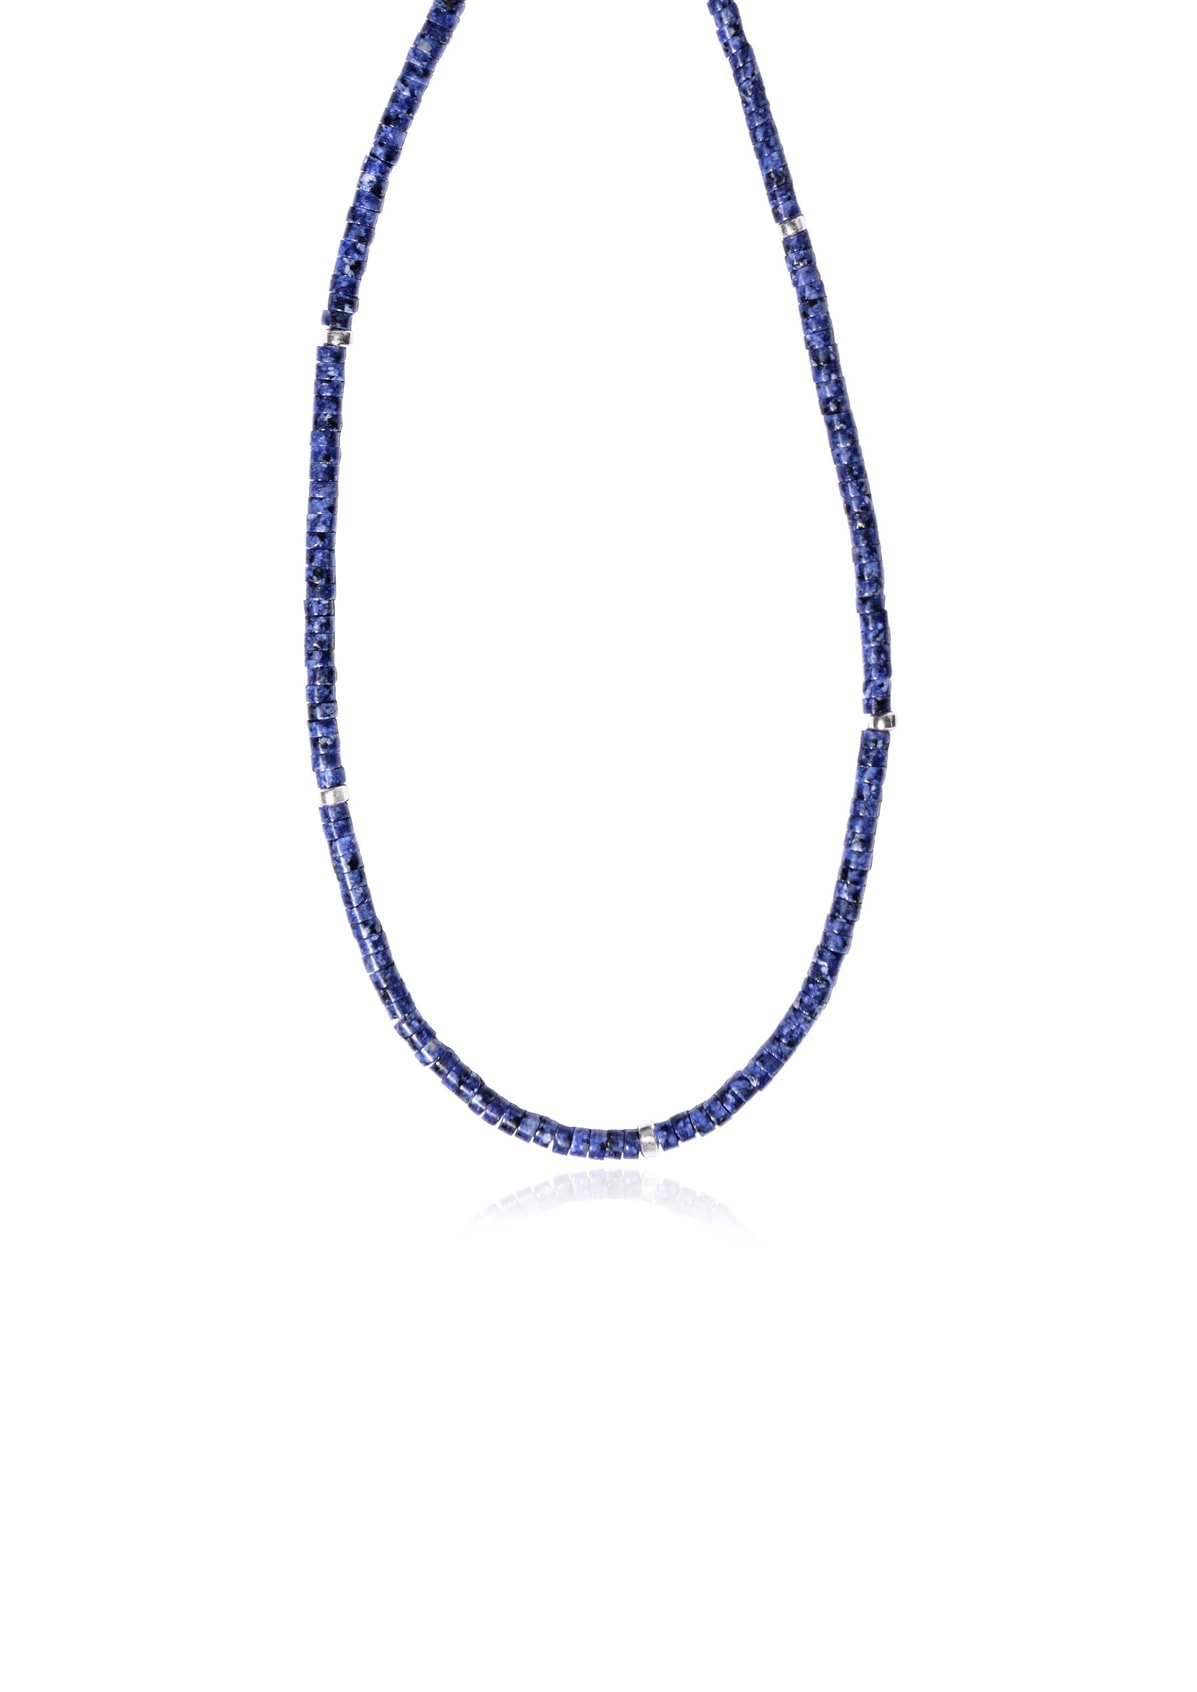 BLUE LAGOON NECKLACE - HERMINA ATHENS X STYLELOVE COLLECTION